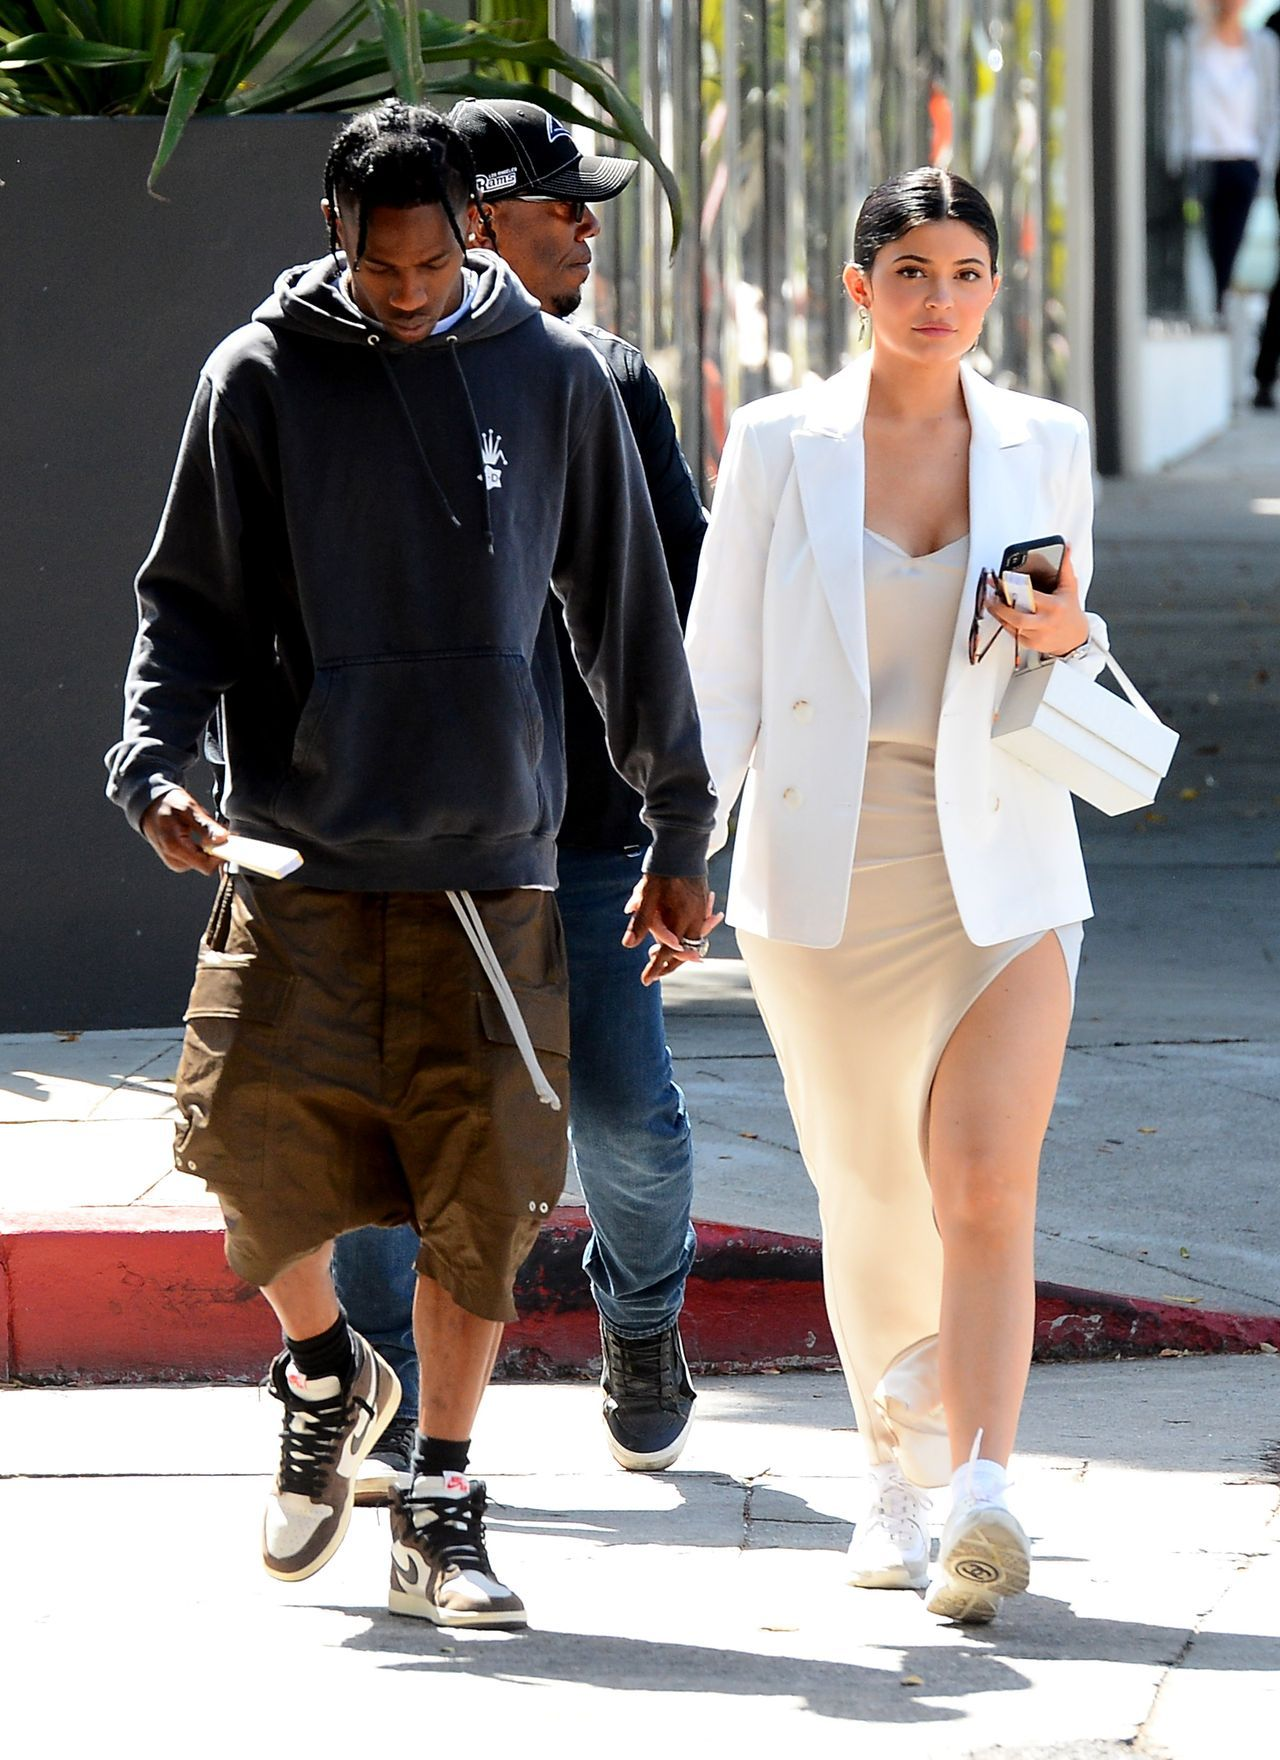 EXCLUSIVE: Kylie Jenner and Travis Scott Hold Hands Shopping at Furniture Store in West Hollywood